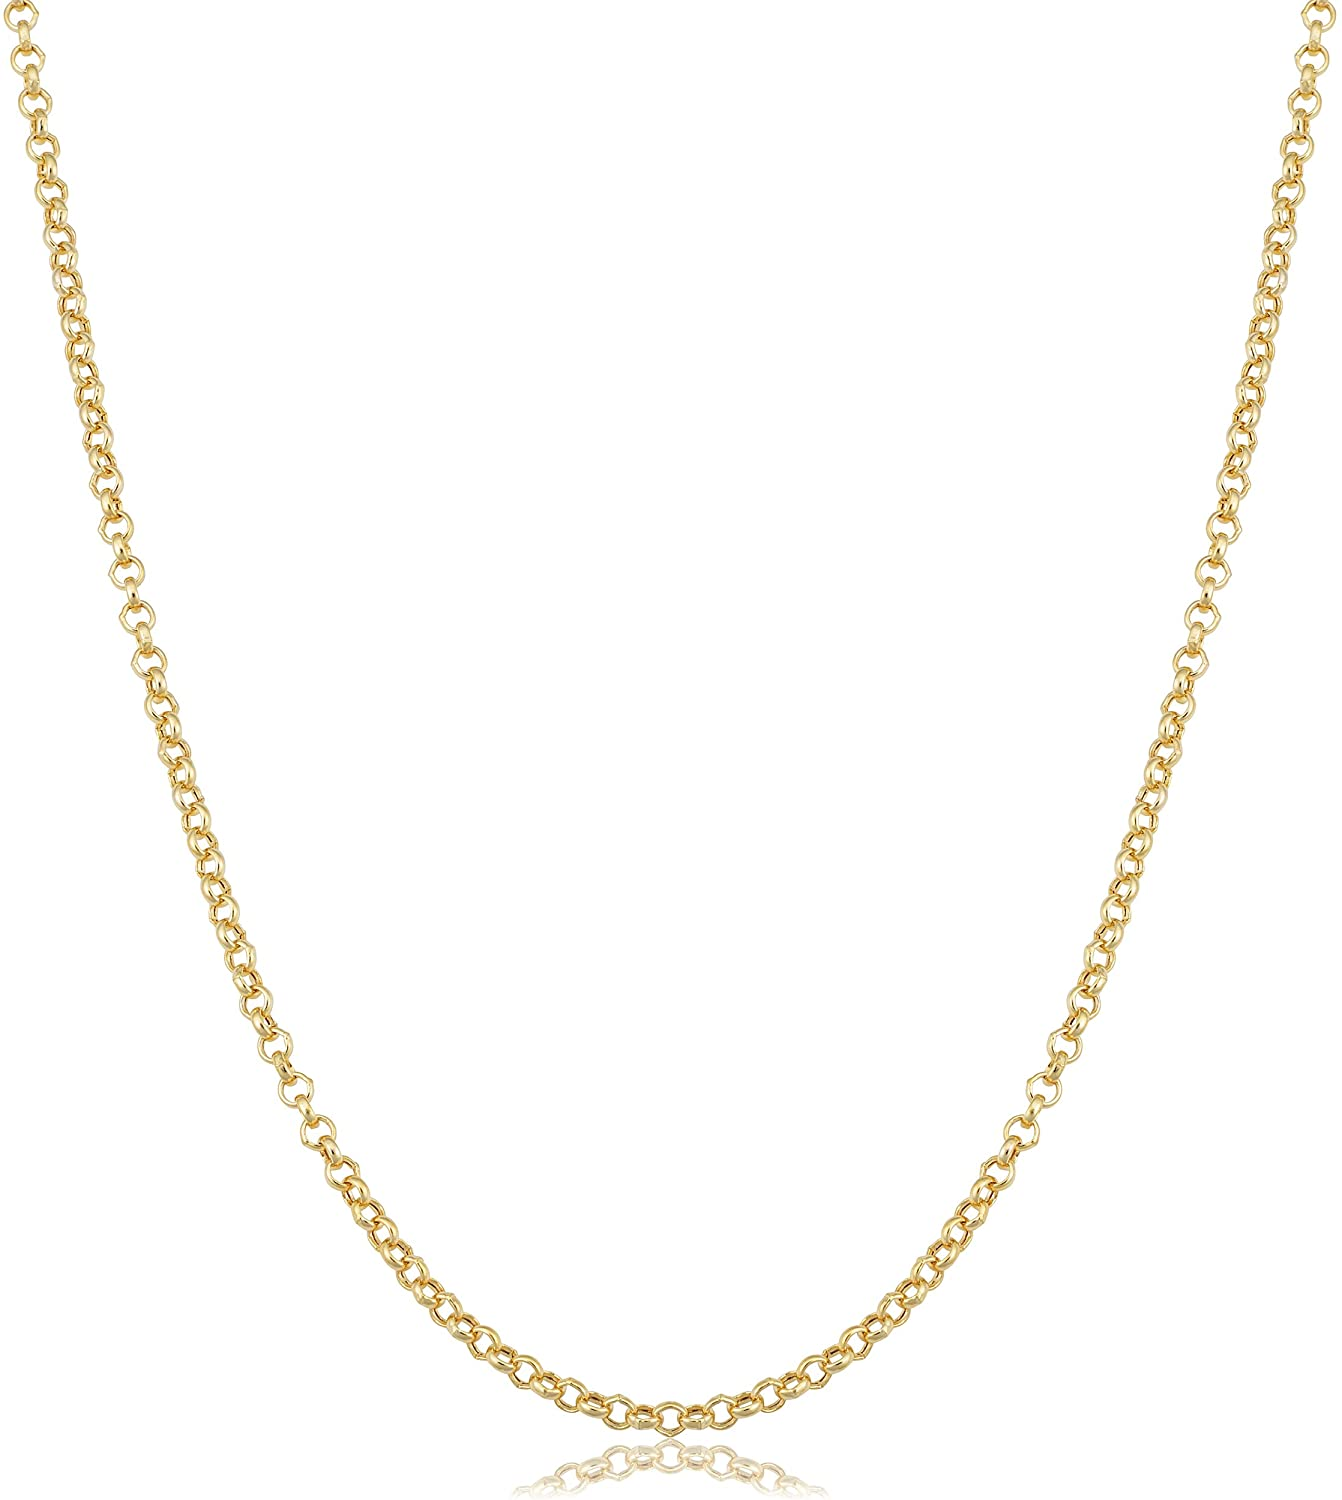 Kooljewelry 14k Yellow Gold 1.9 mm Rolo Chain Necklace (16, 18, 20, 22, 24 or 30 inch)